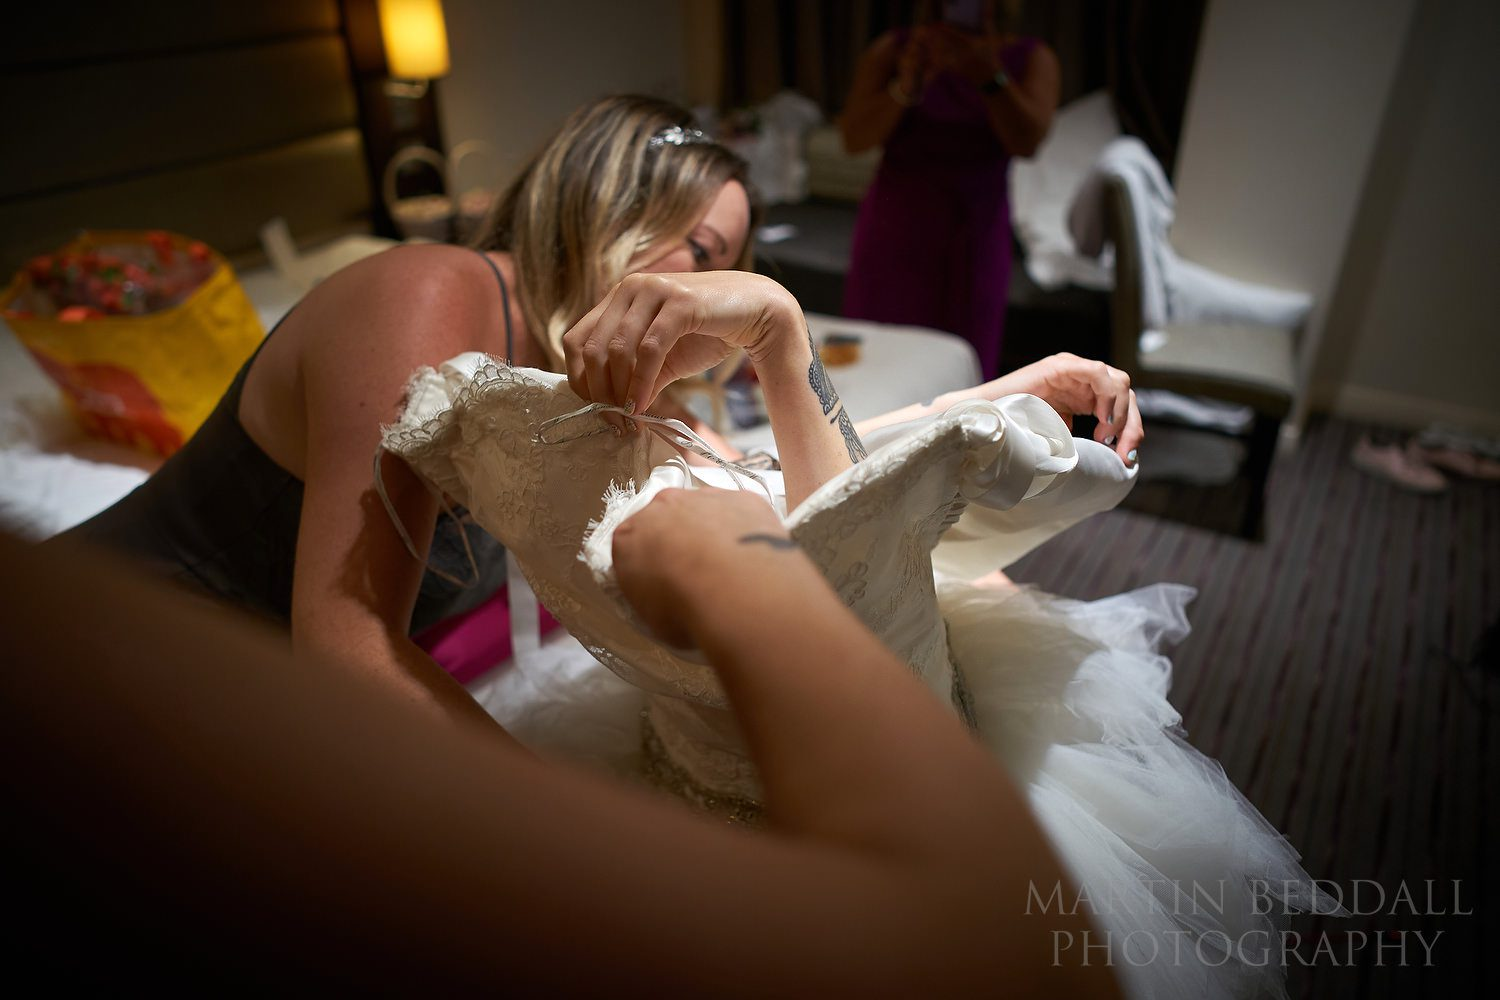 Bride emerges from the wedding dress